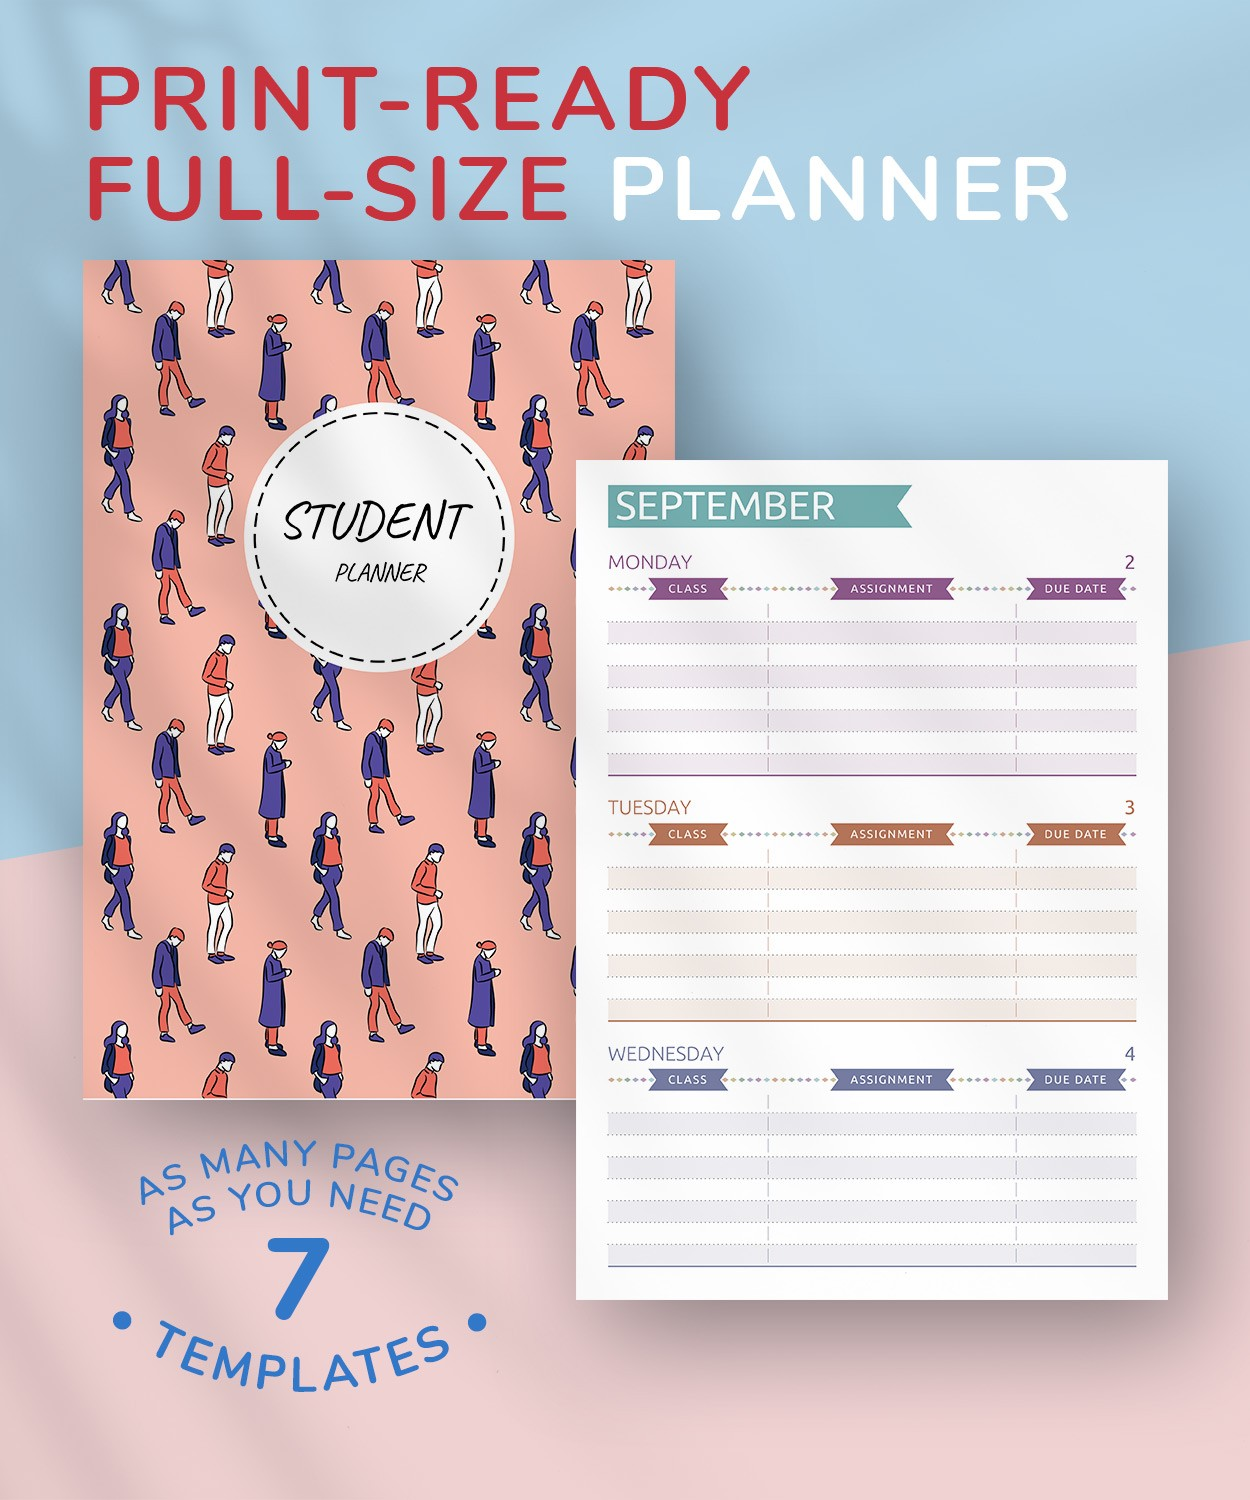 picture regarding Printable Student Planner Download titled No cost Printable Pupil Planner - Relaxed Structure PDF Down load